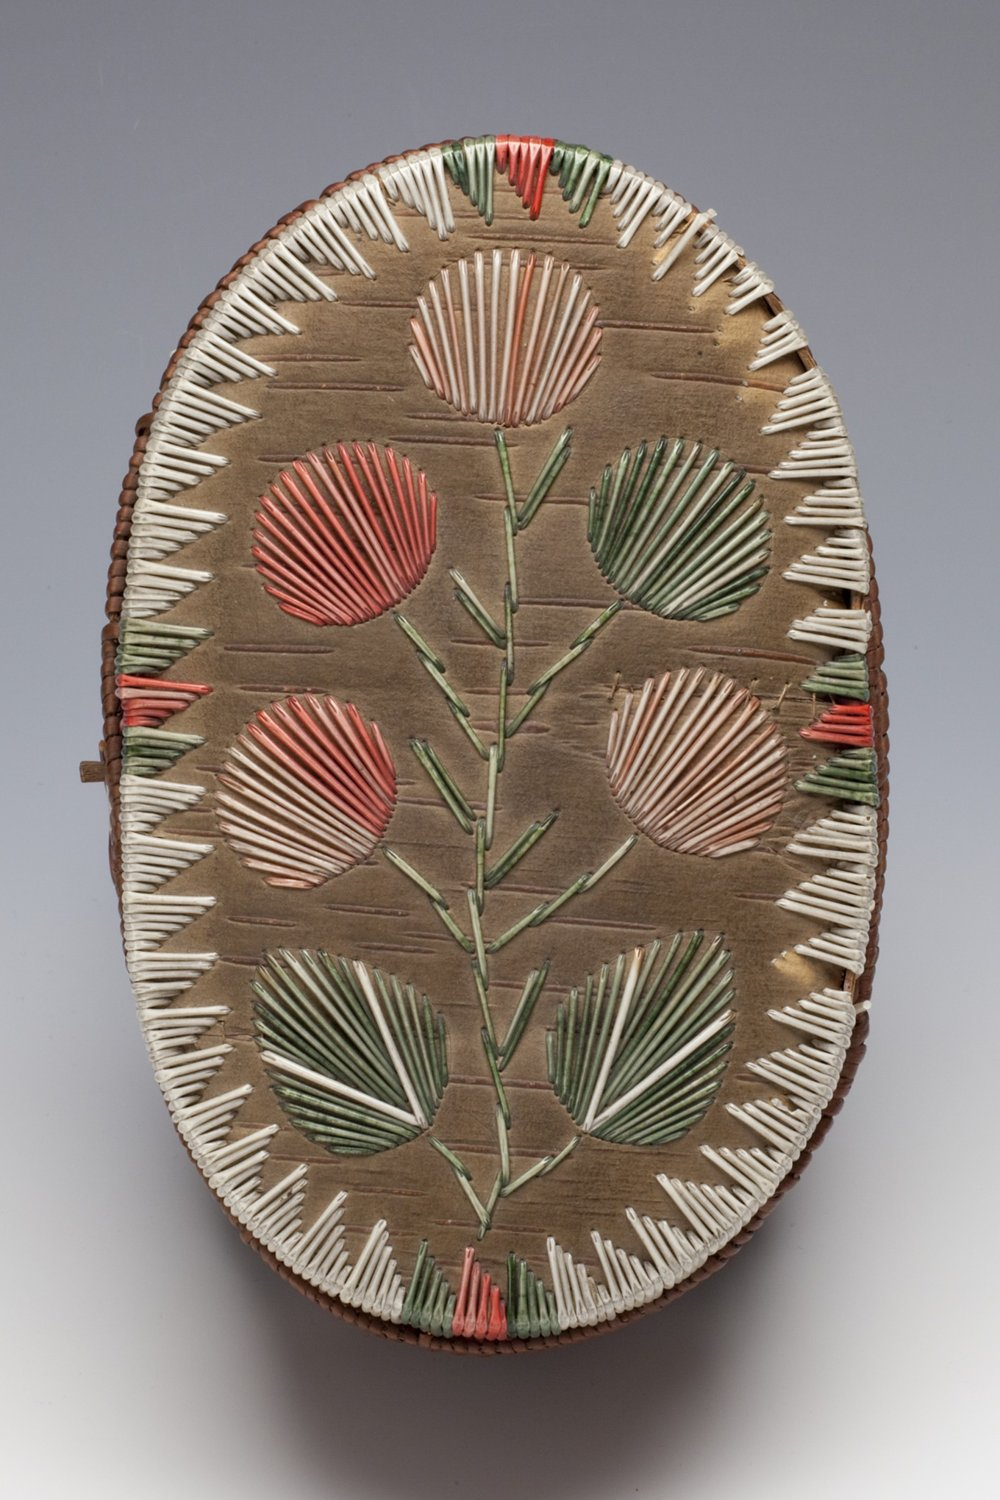 Anishinaabe, oblong birch bark basket with lid, about 1900, top view